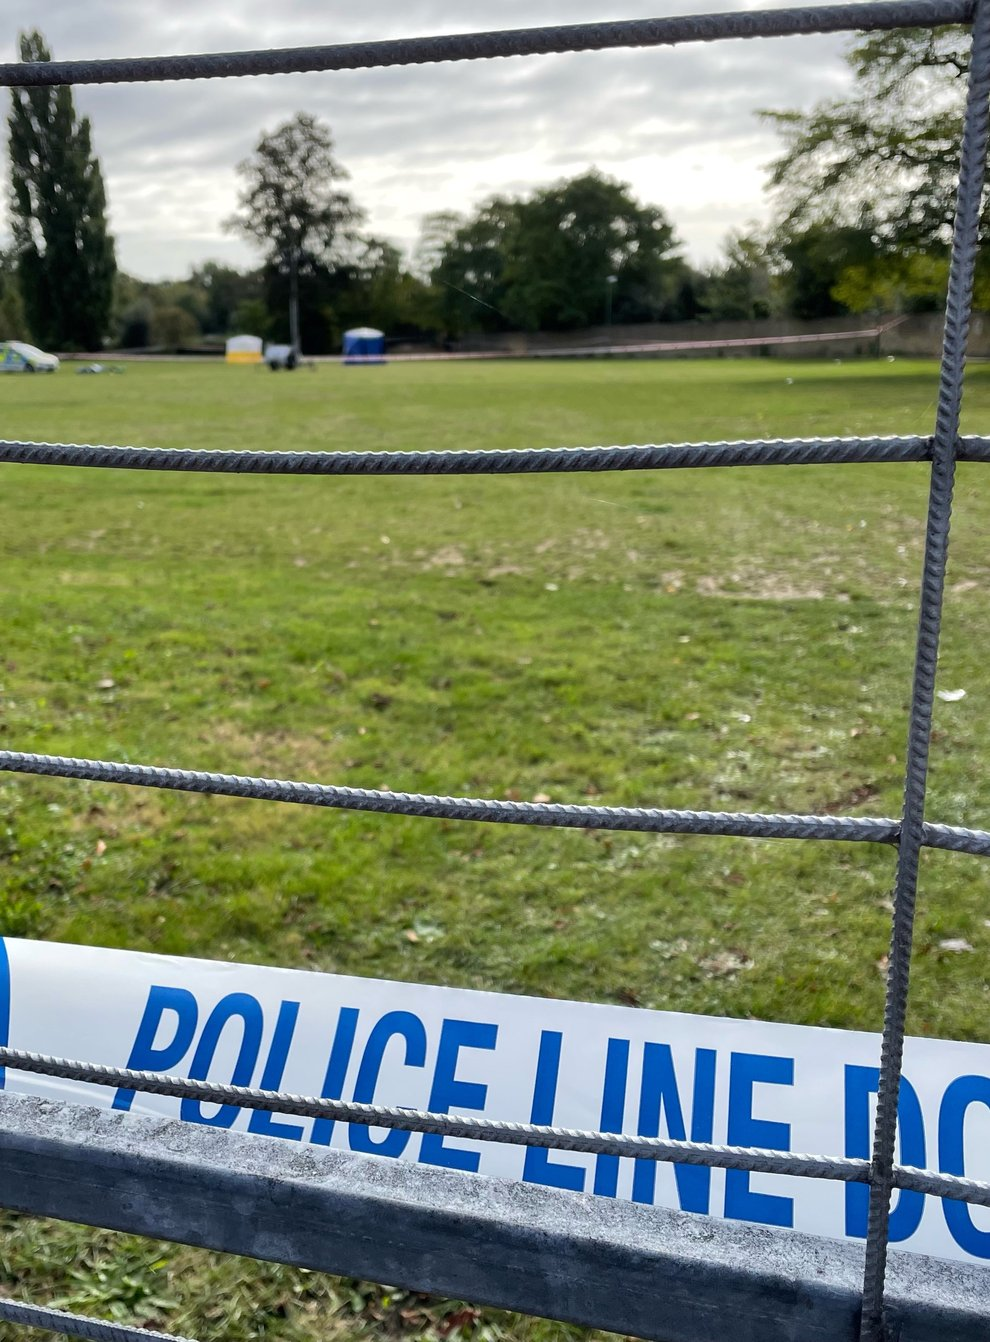 Police tape at the scene on a playing field in Craneford Way, Twickenham, south-west London, where an 18-year-old was stabbed on Tuesday afternoon (Sophie Wingate/PA)